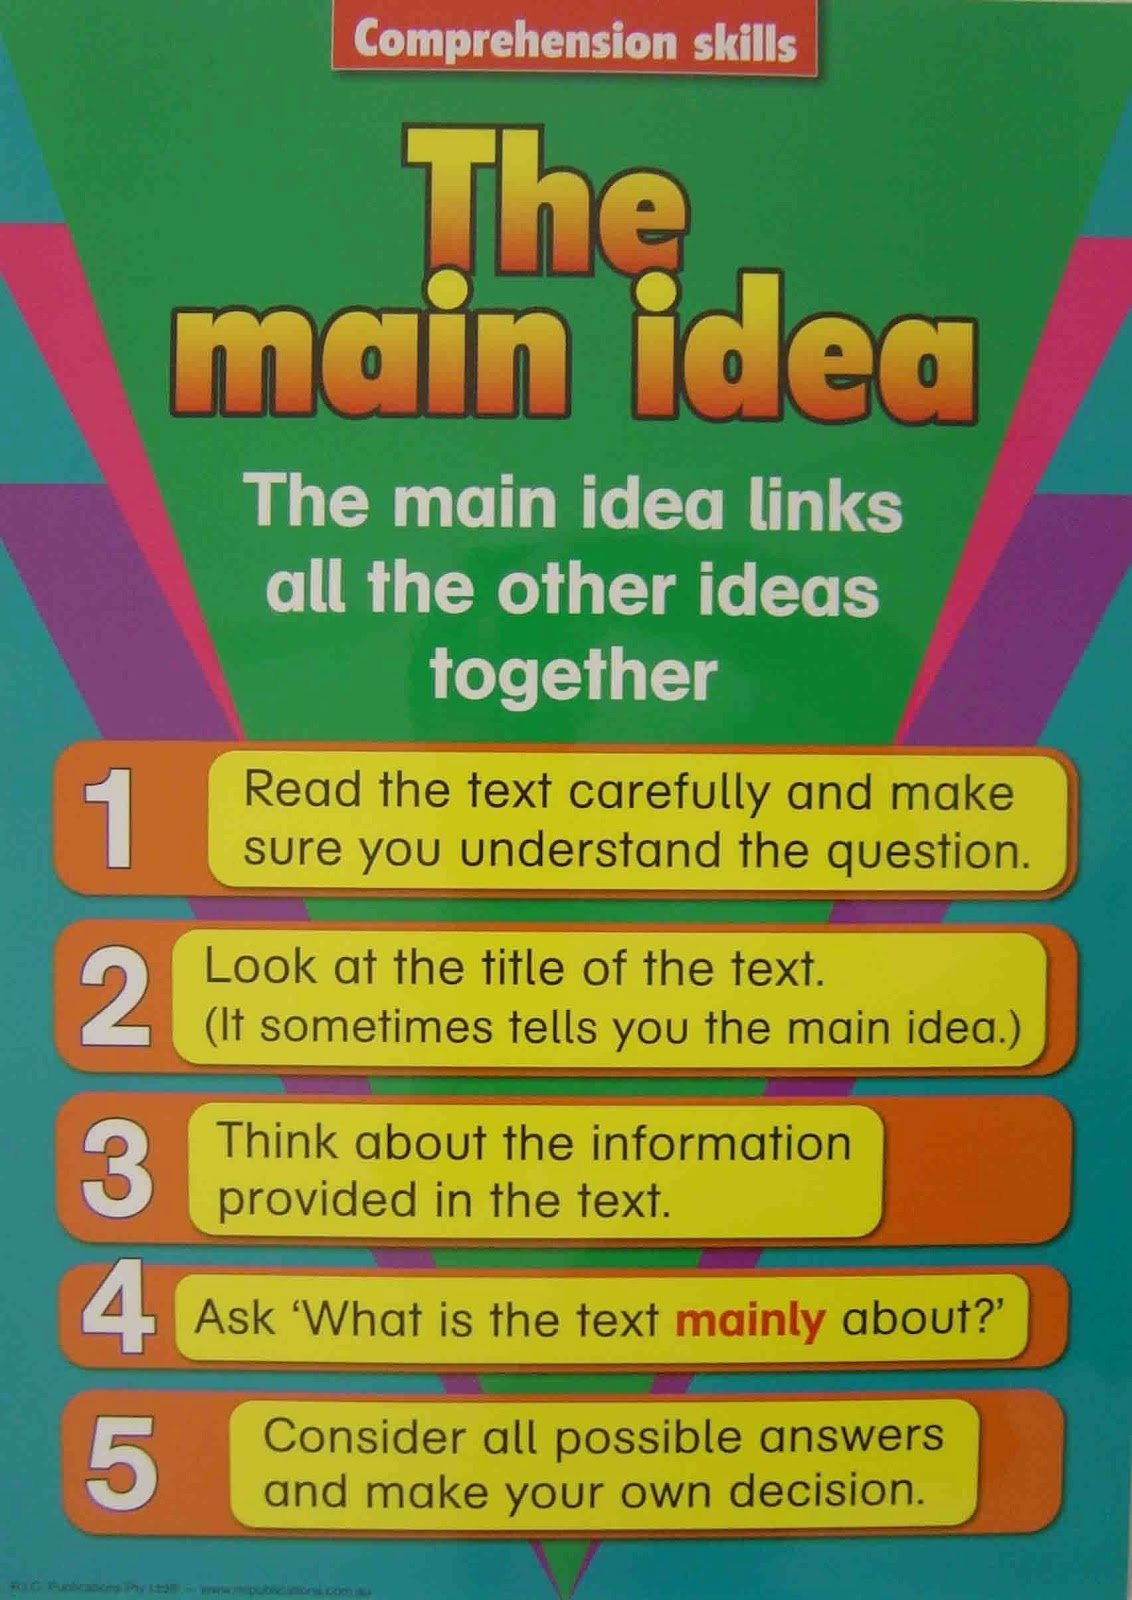 10 Unique How To Find The Main Idea main idea review practice lessons tes teach 1 2020